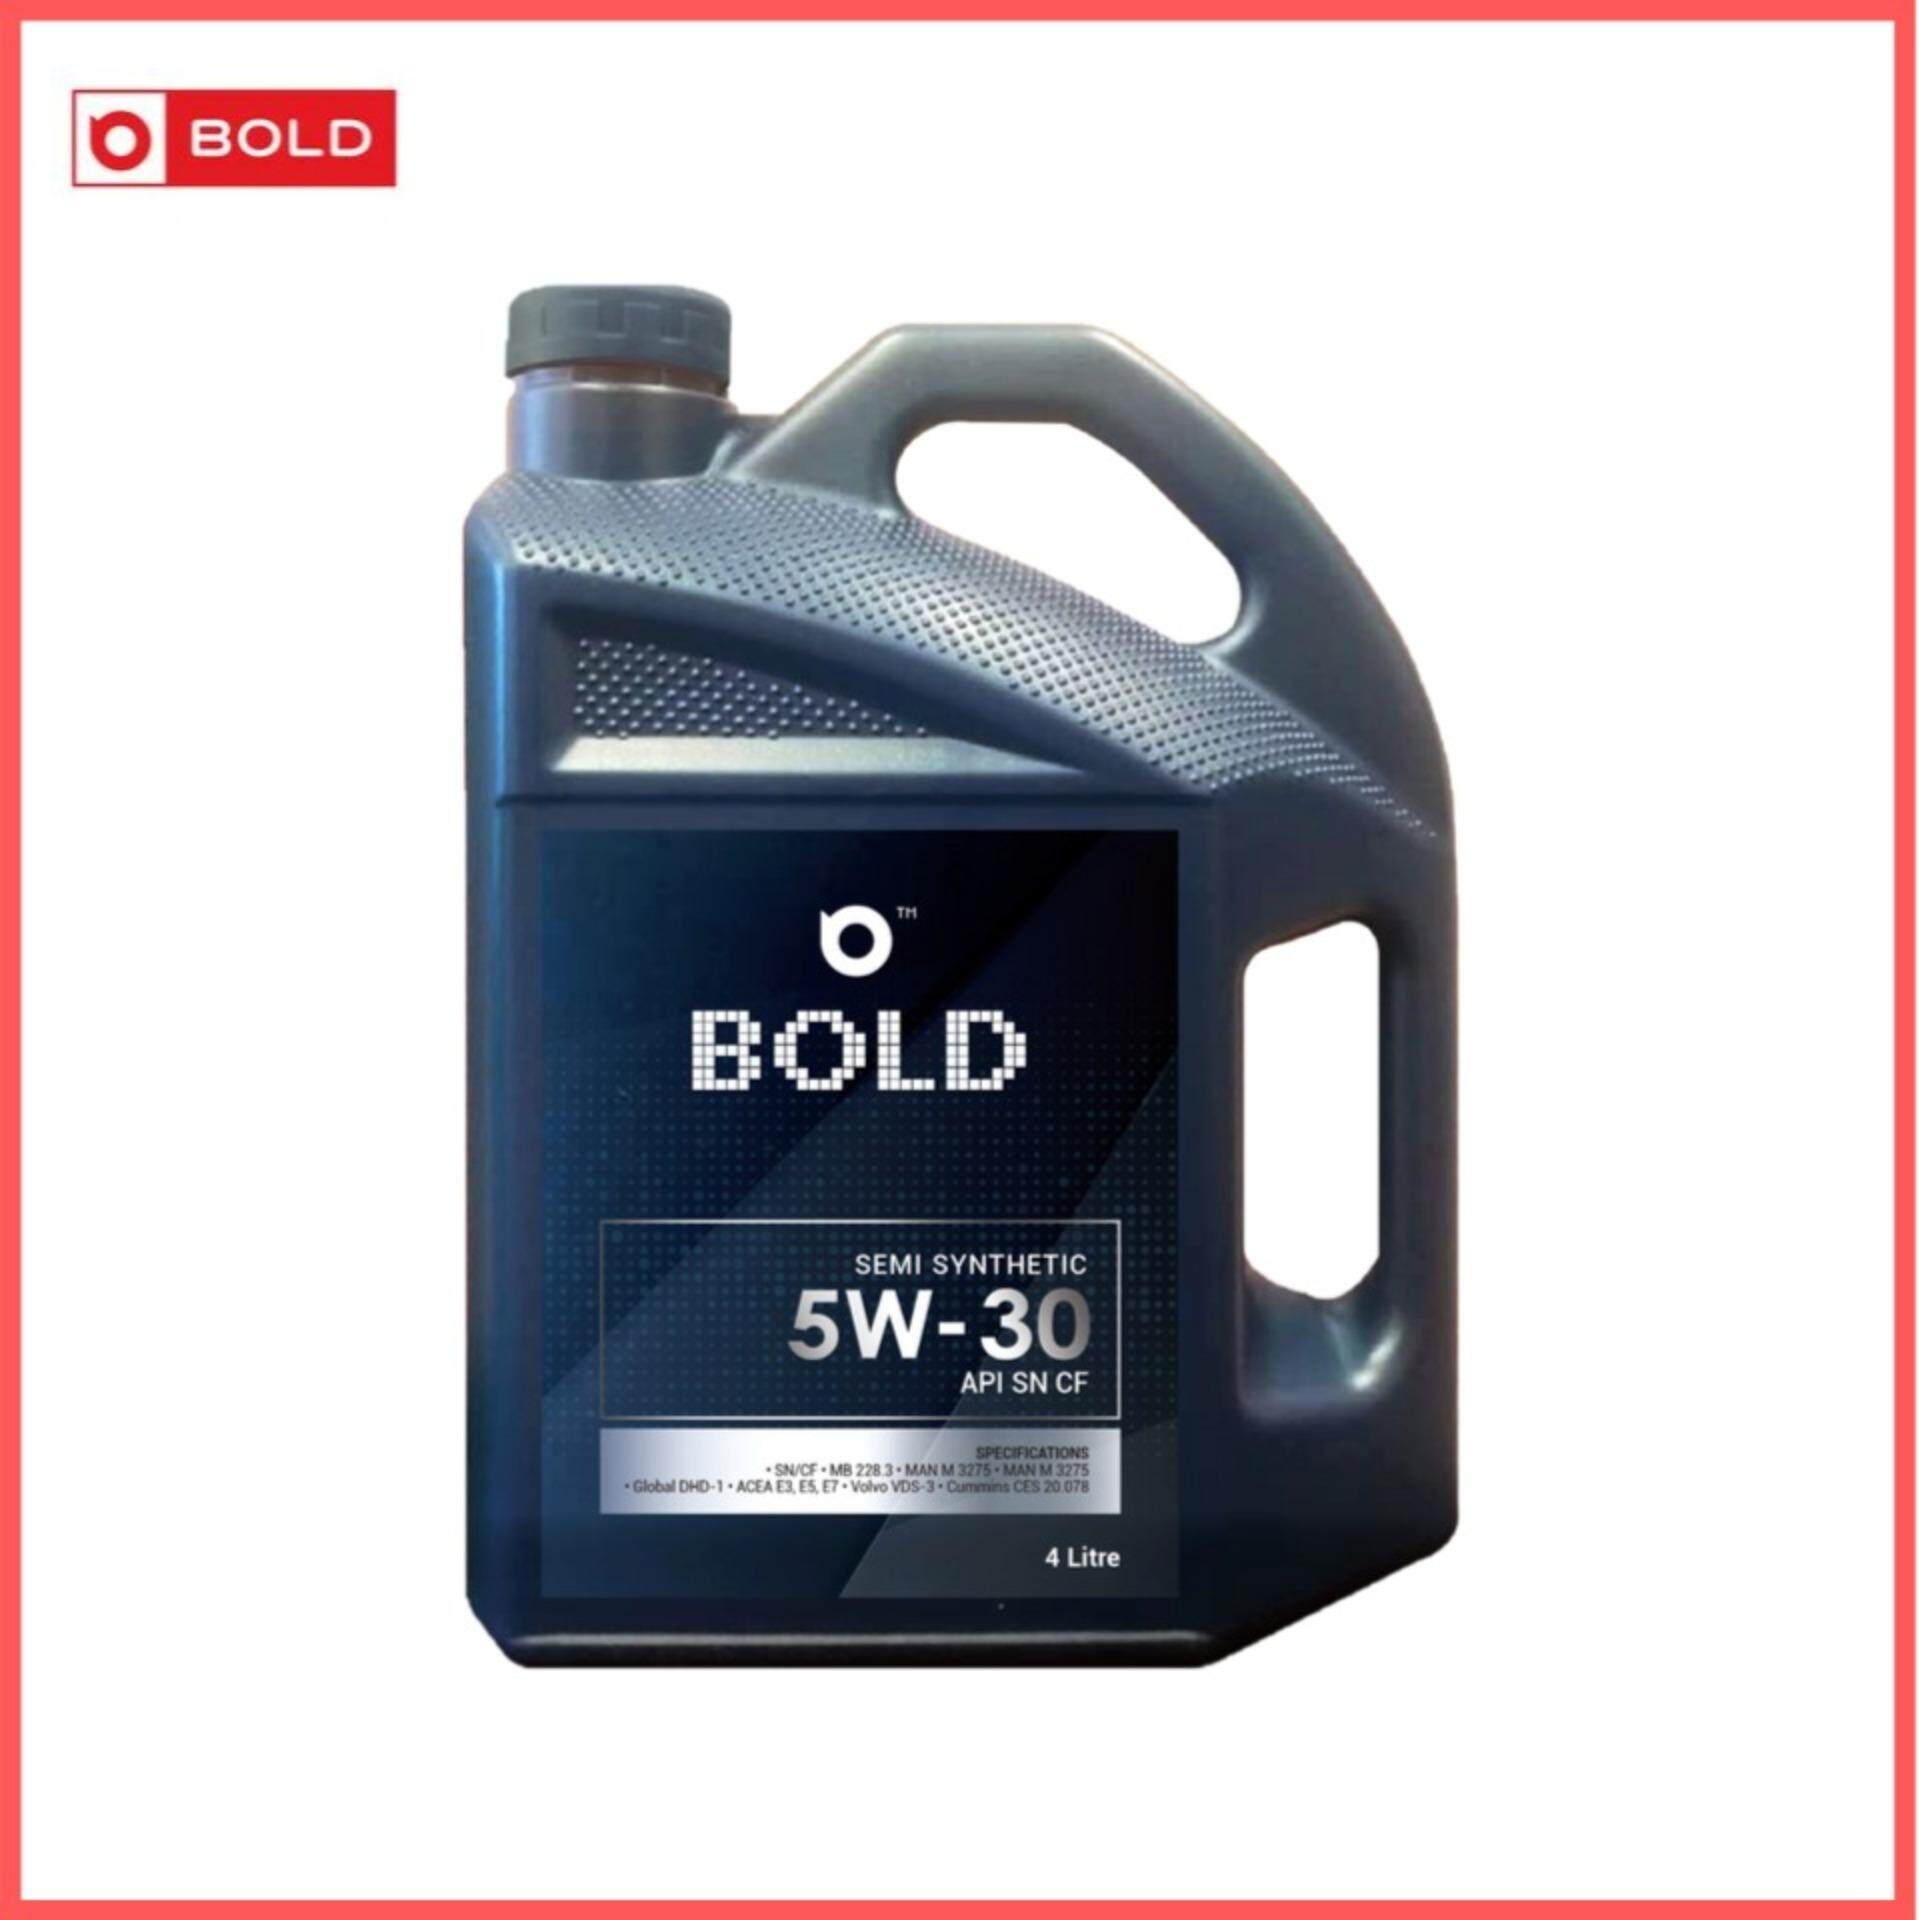 Bold Semi Synthetic SN 5w30 Engine Oil Lubricant 5w-30 4L / 4Litre